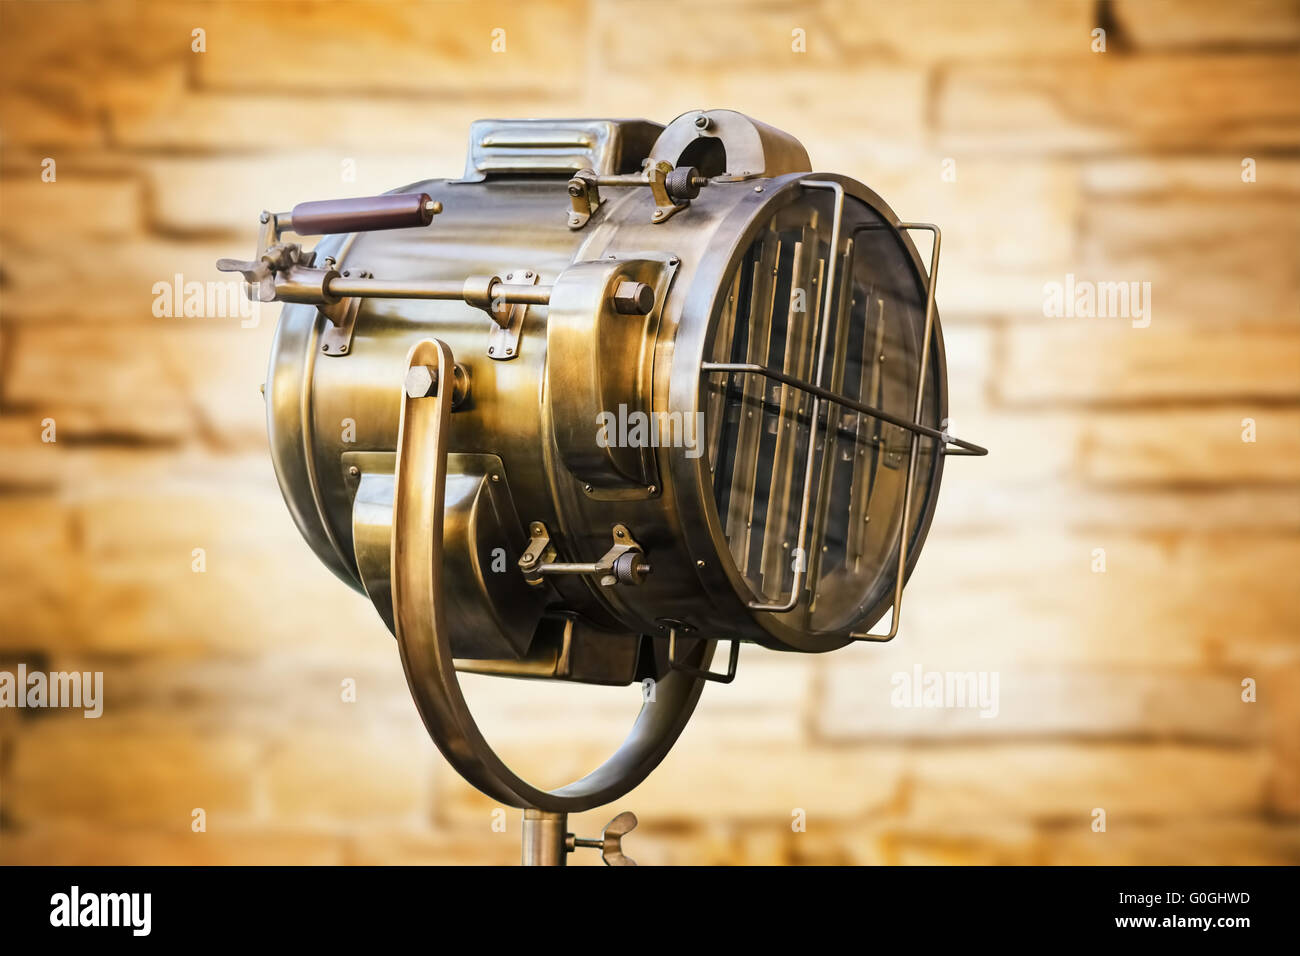 Old Copper Floodlight - Stock Image